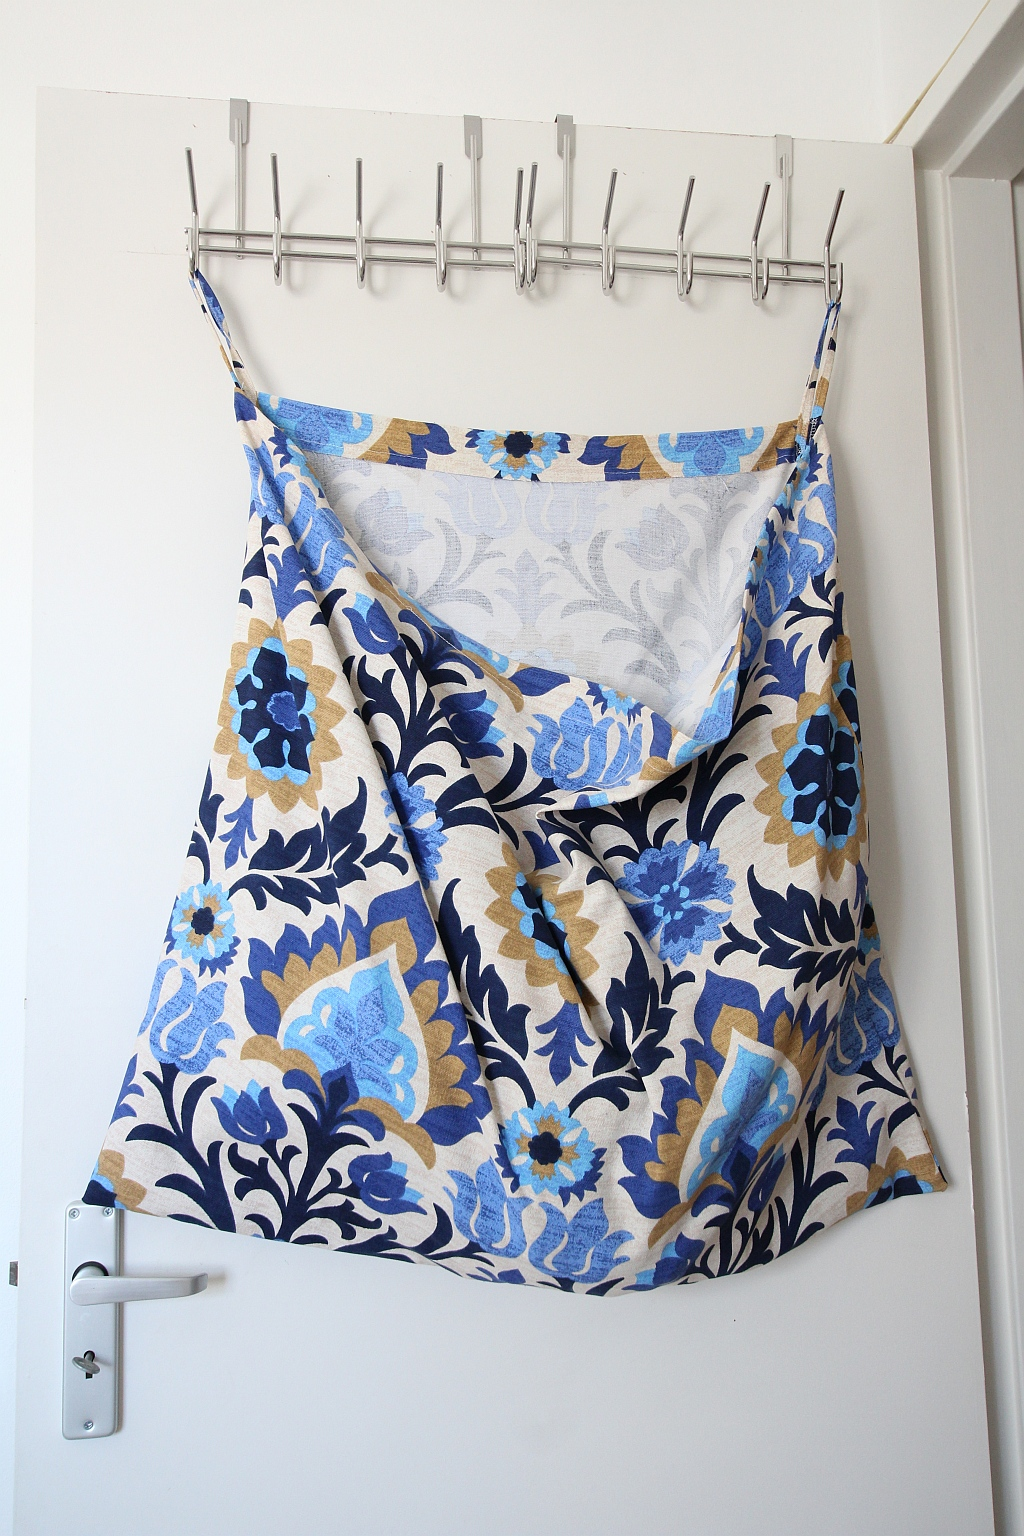 Wall Hanging Laundry Bag